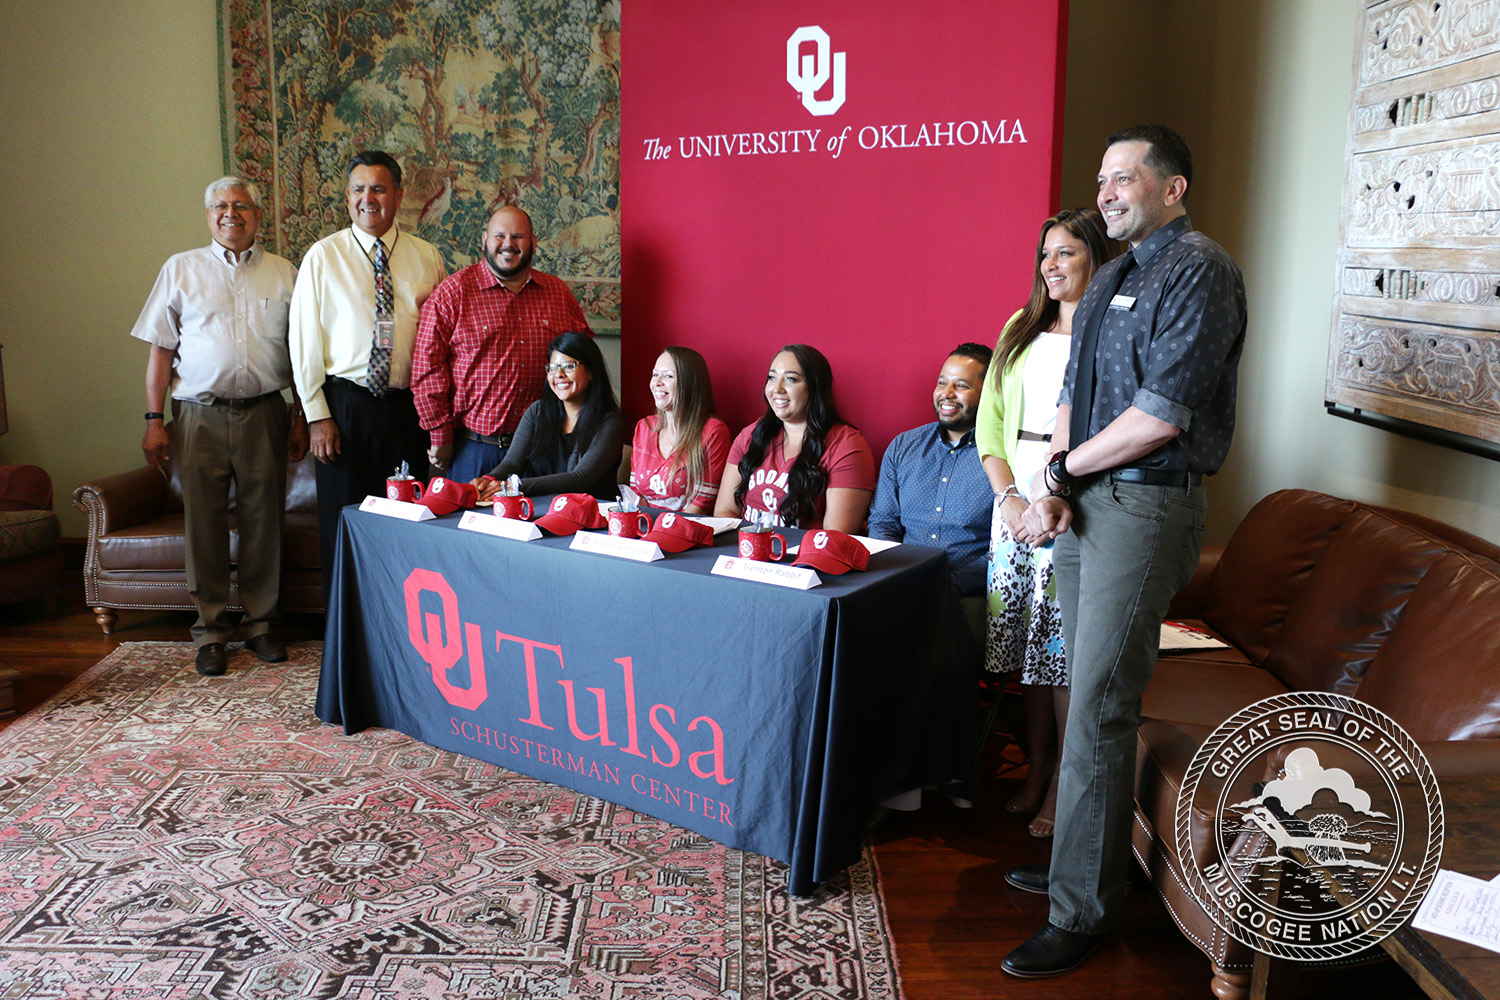 Muscogee (Creek) Nation partners with University of Oklahoma for social work grant